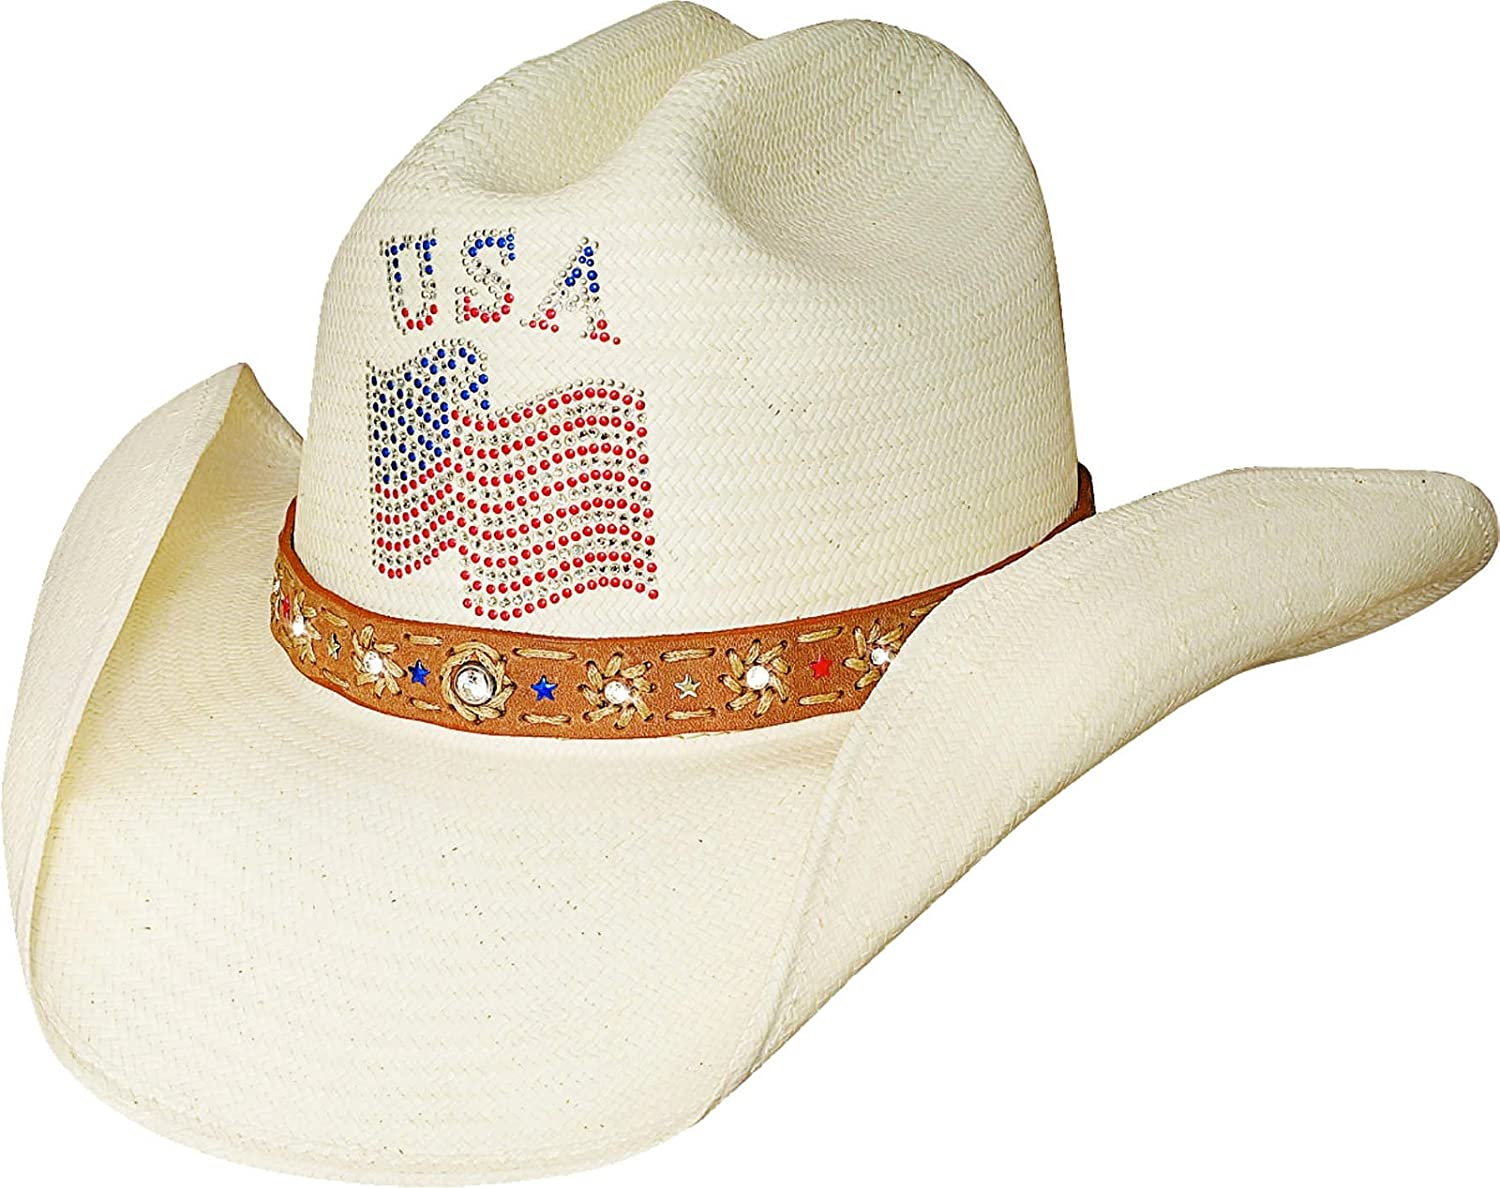 american pride cowgirl hat - photo #30